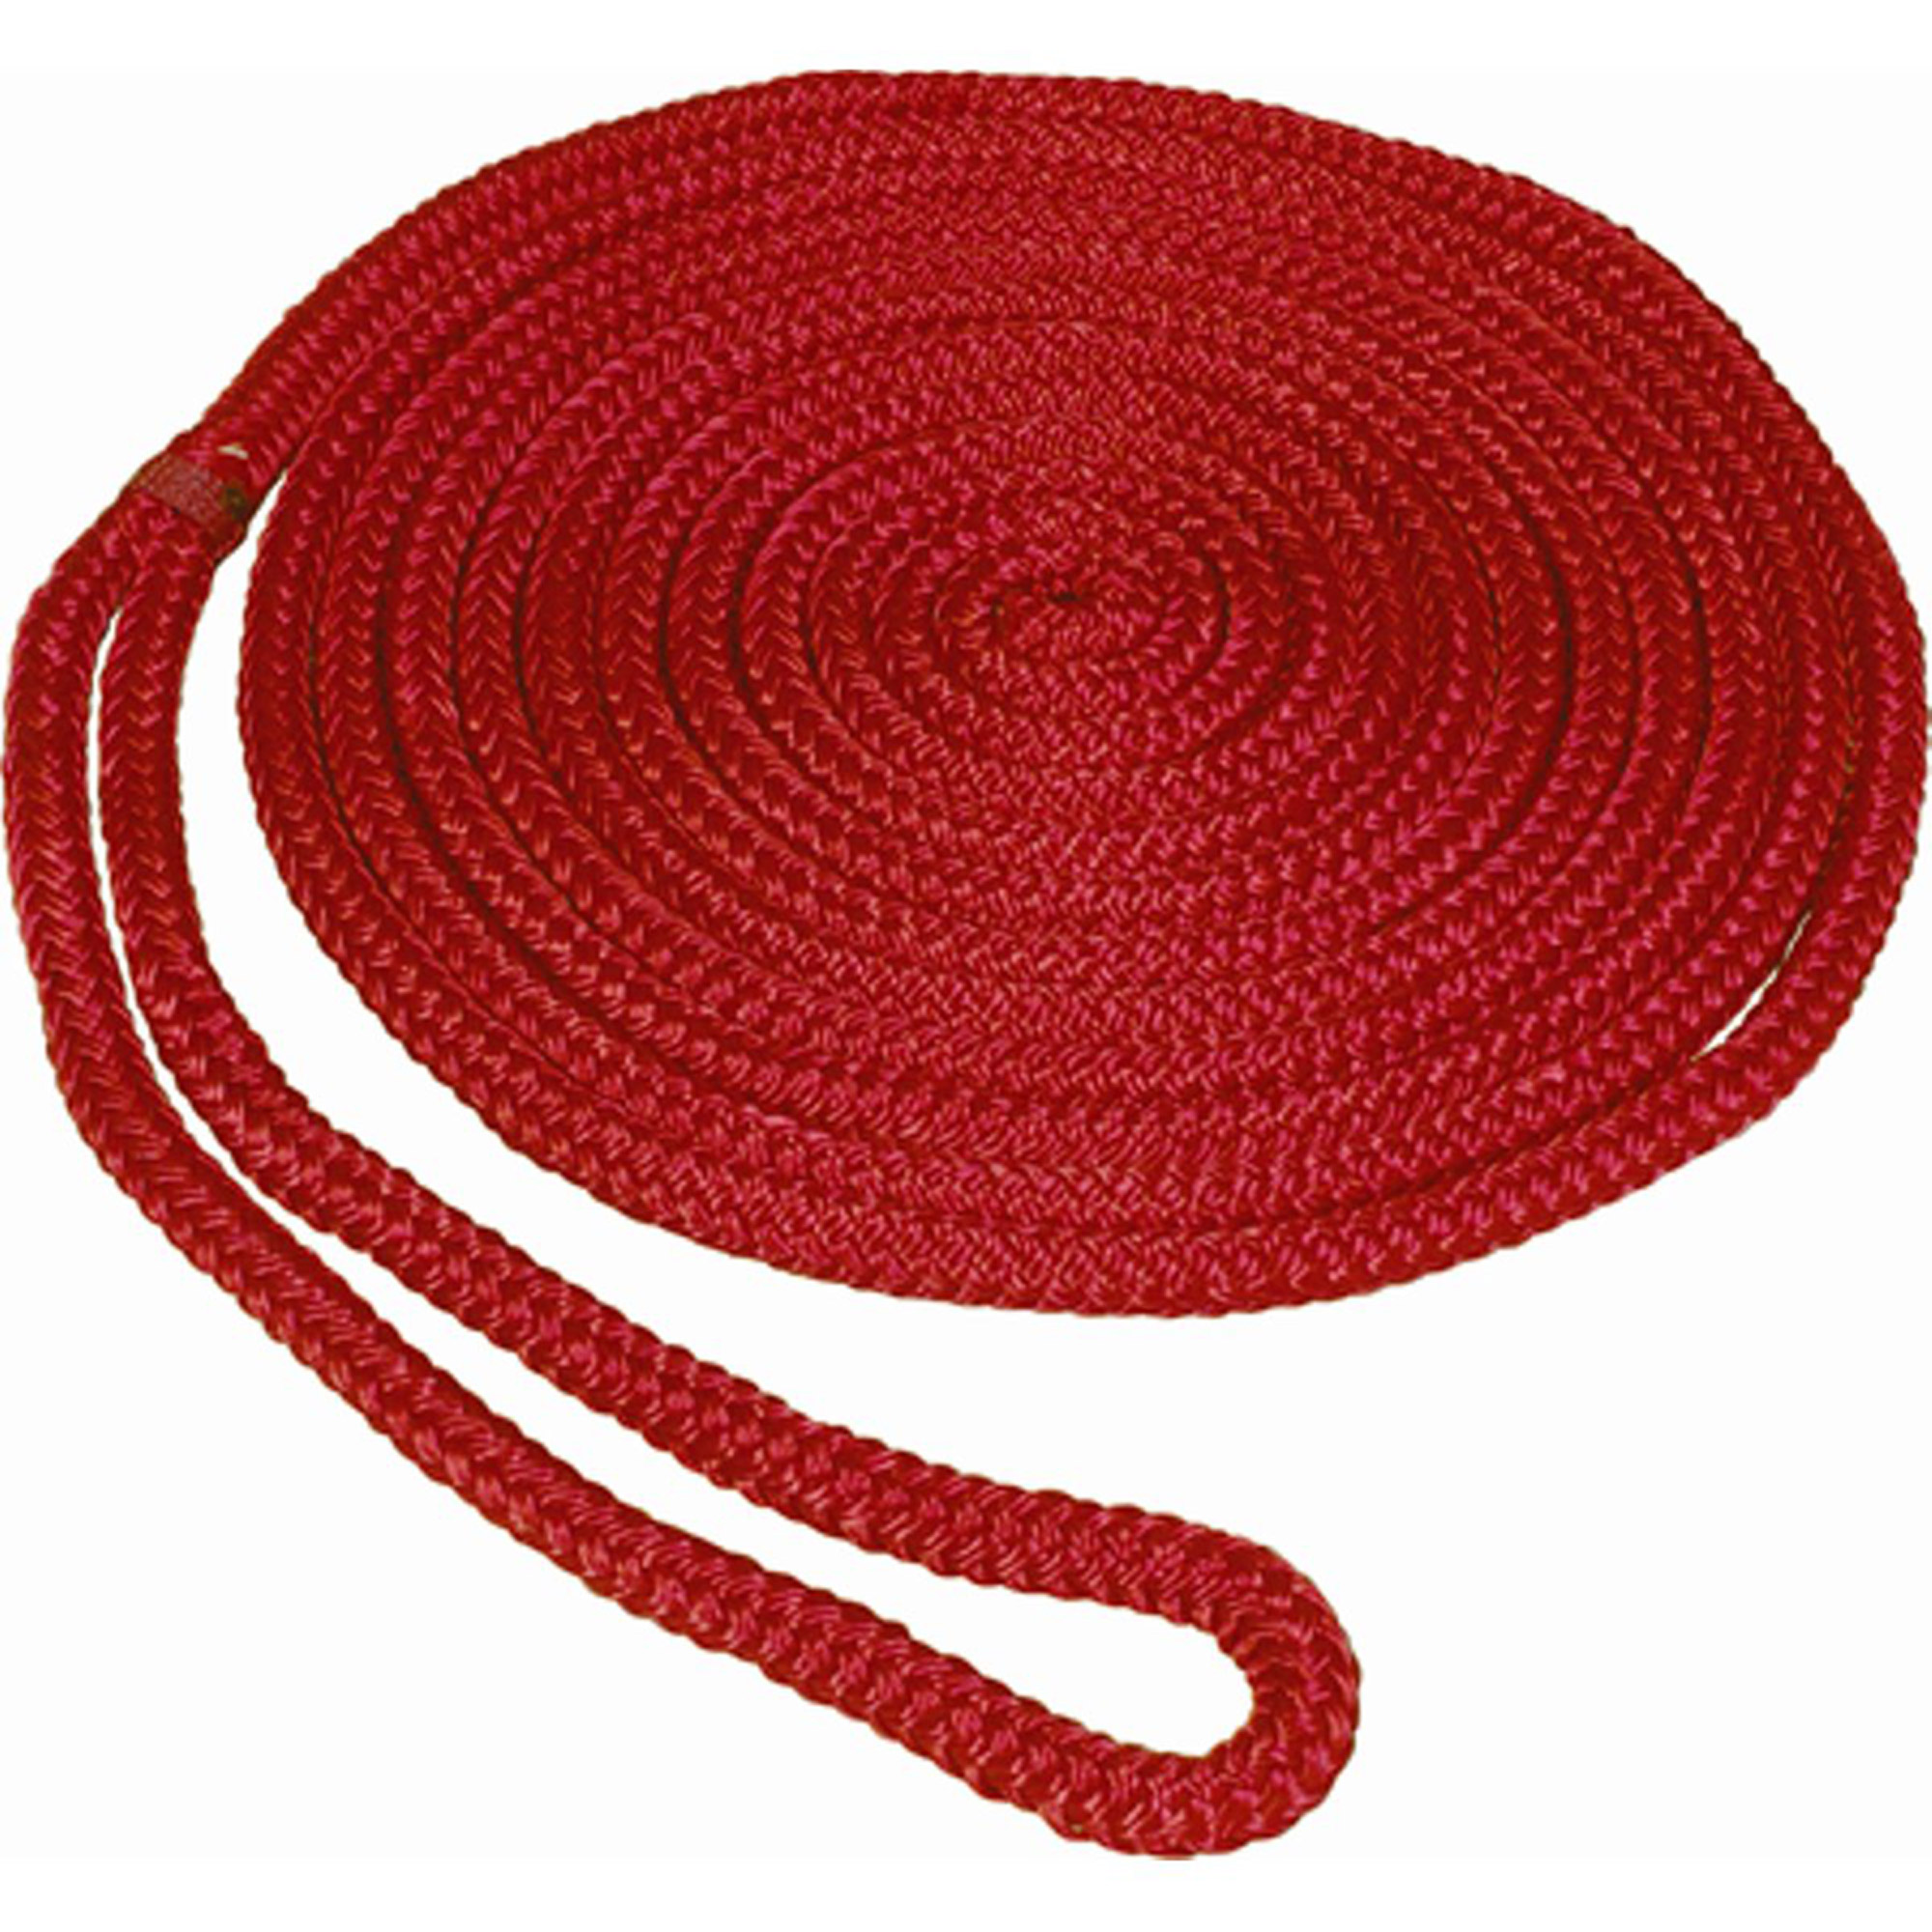 "Click here to buy SeaSense Pre-Spliced Double Braid MFP Dock Line, 1 2"" x 25', 12"" Eye, Red by Generic."